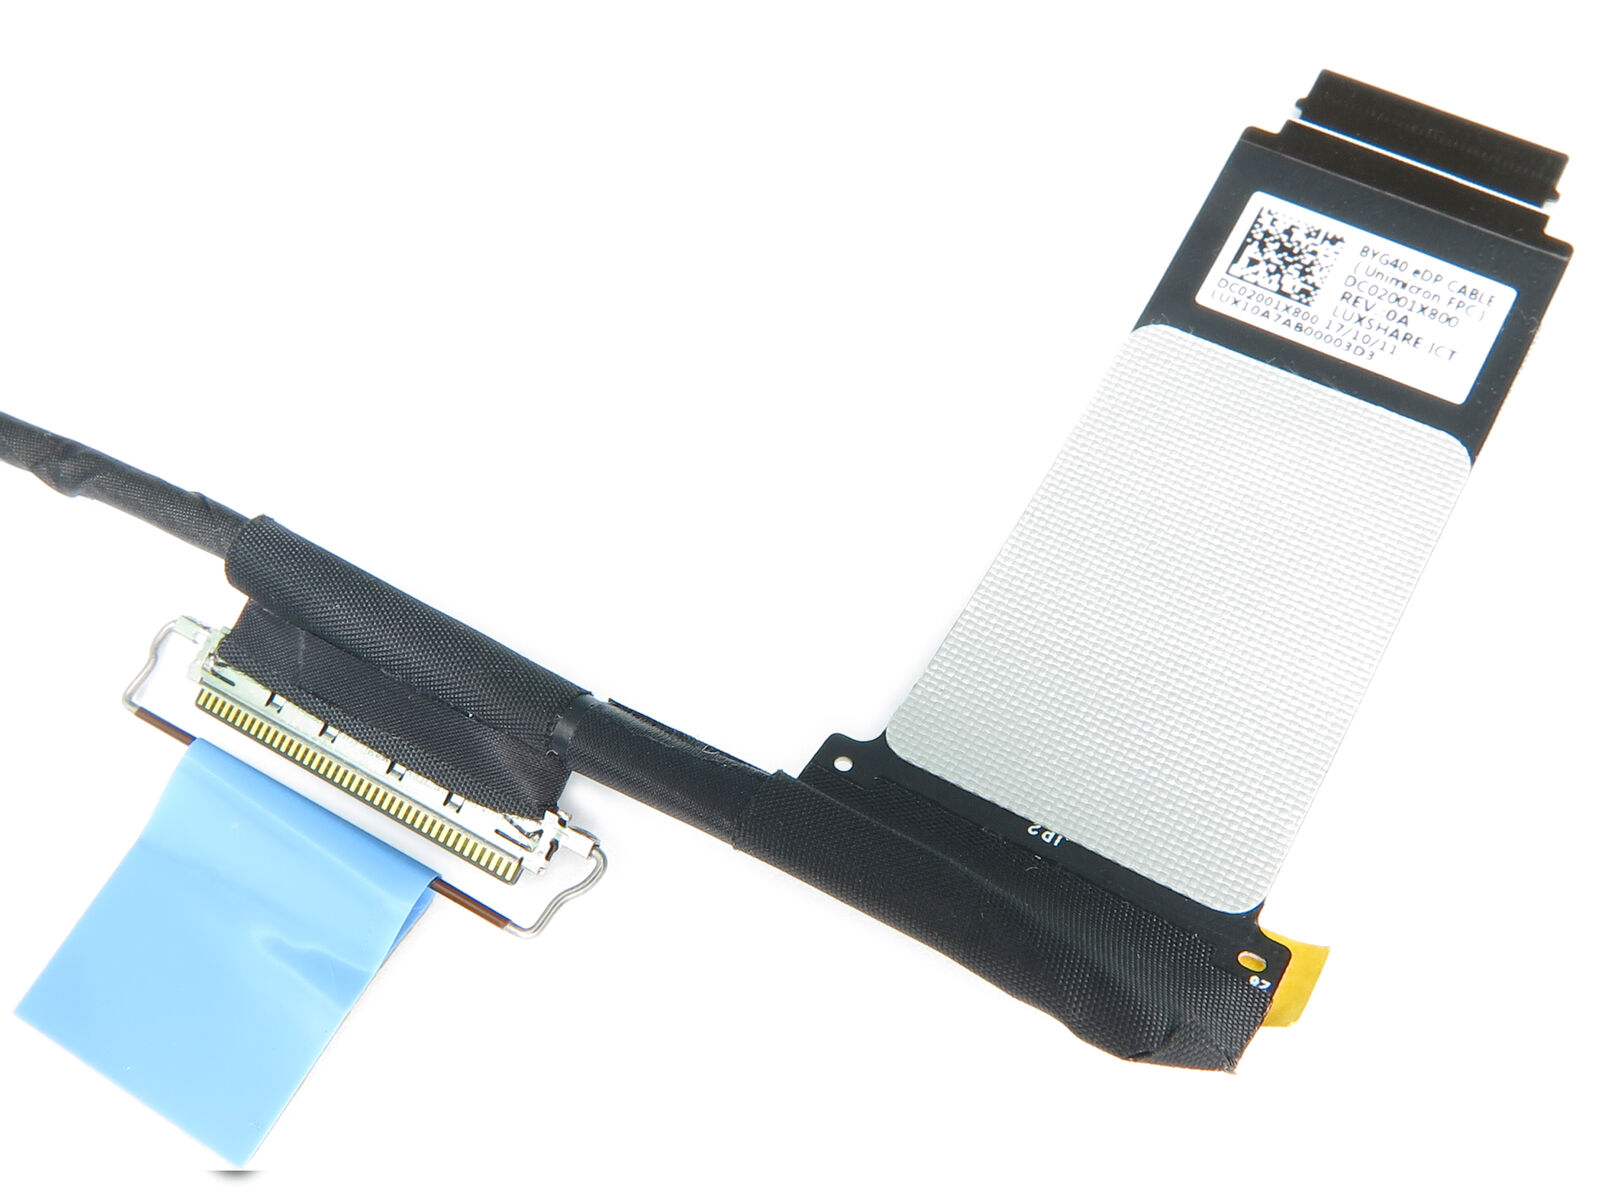 LVDS LCD Display EDP Video Cable For Lenovo DC02001X810 900-13ISK2 YOGA 4 80MK